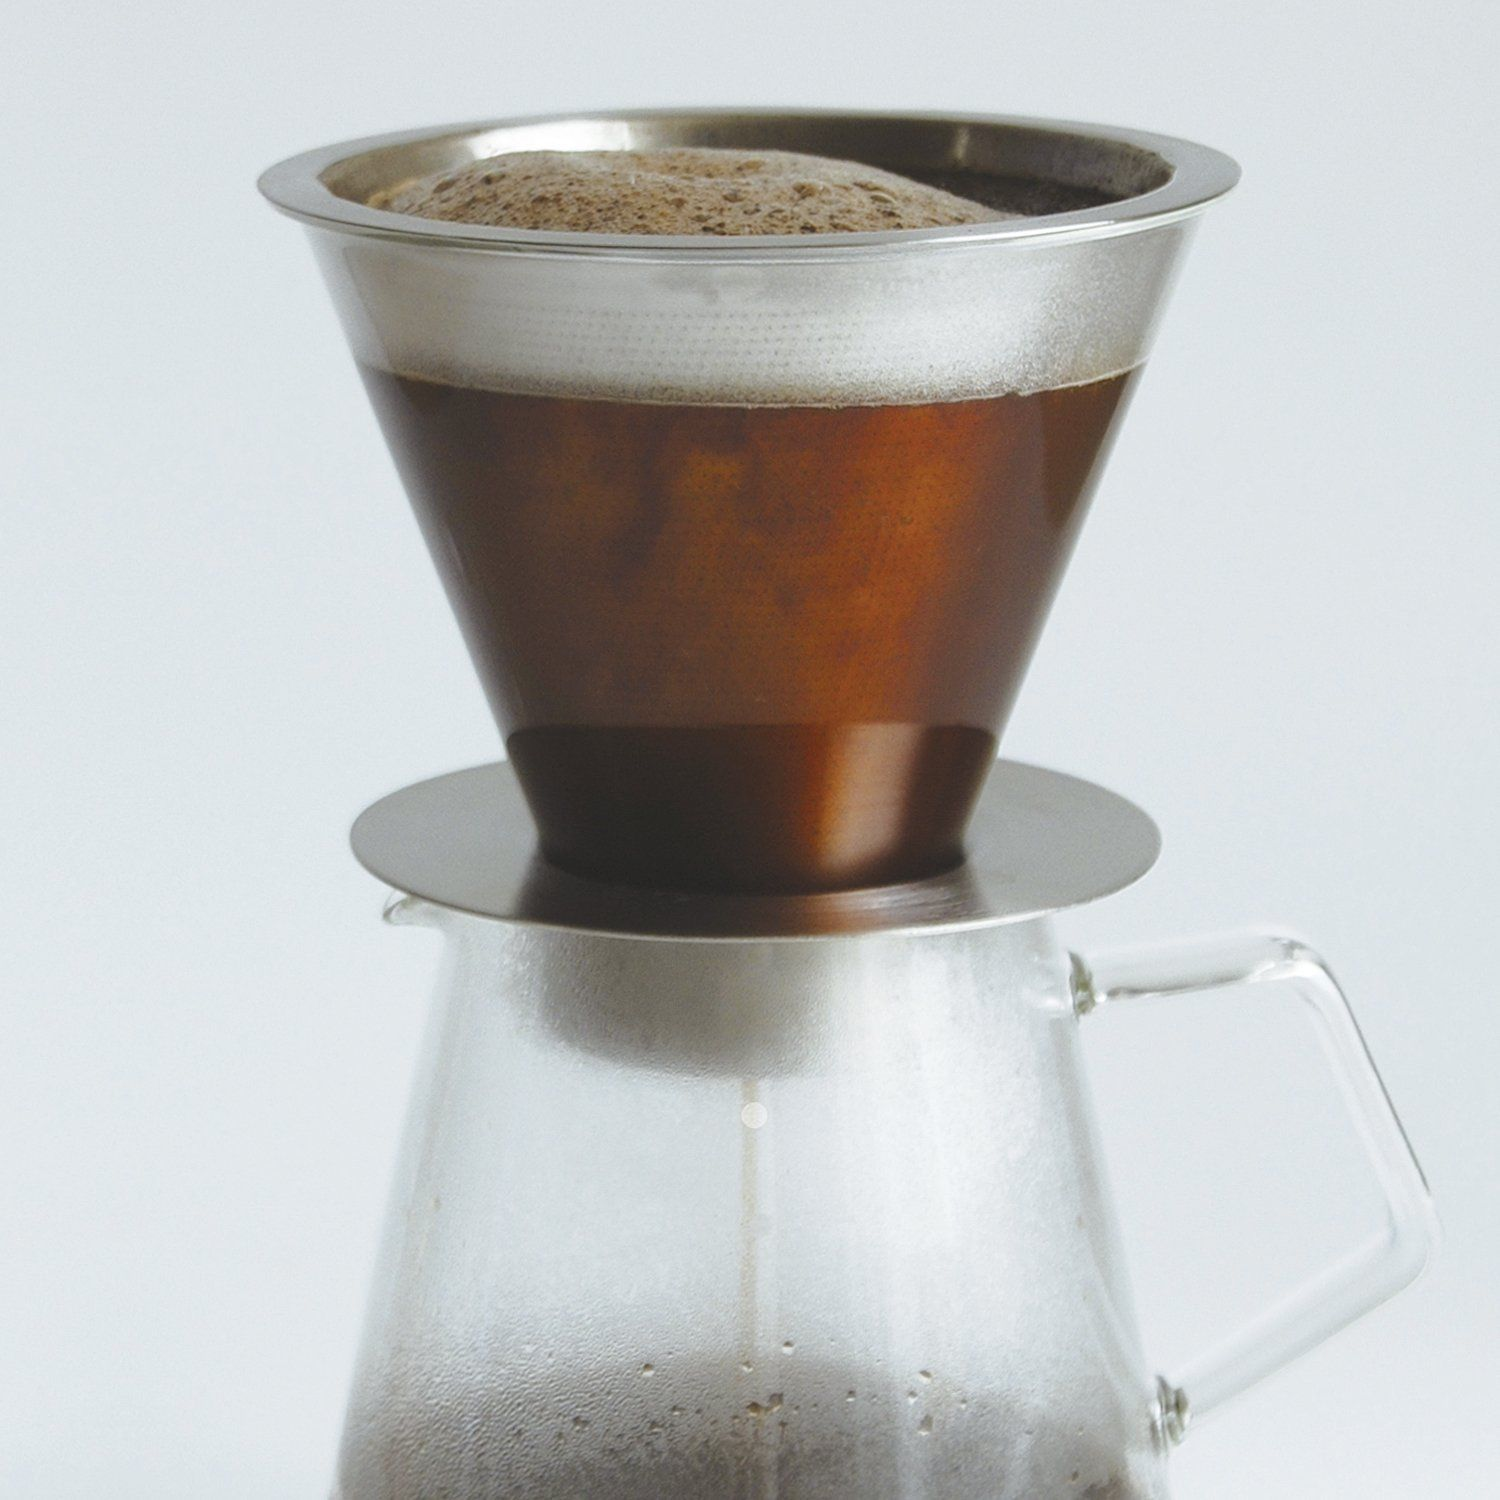 700 ml Carat Coffee Dripper and Pot with Lid by Kinto image 12